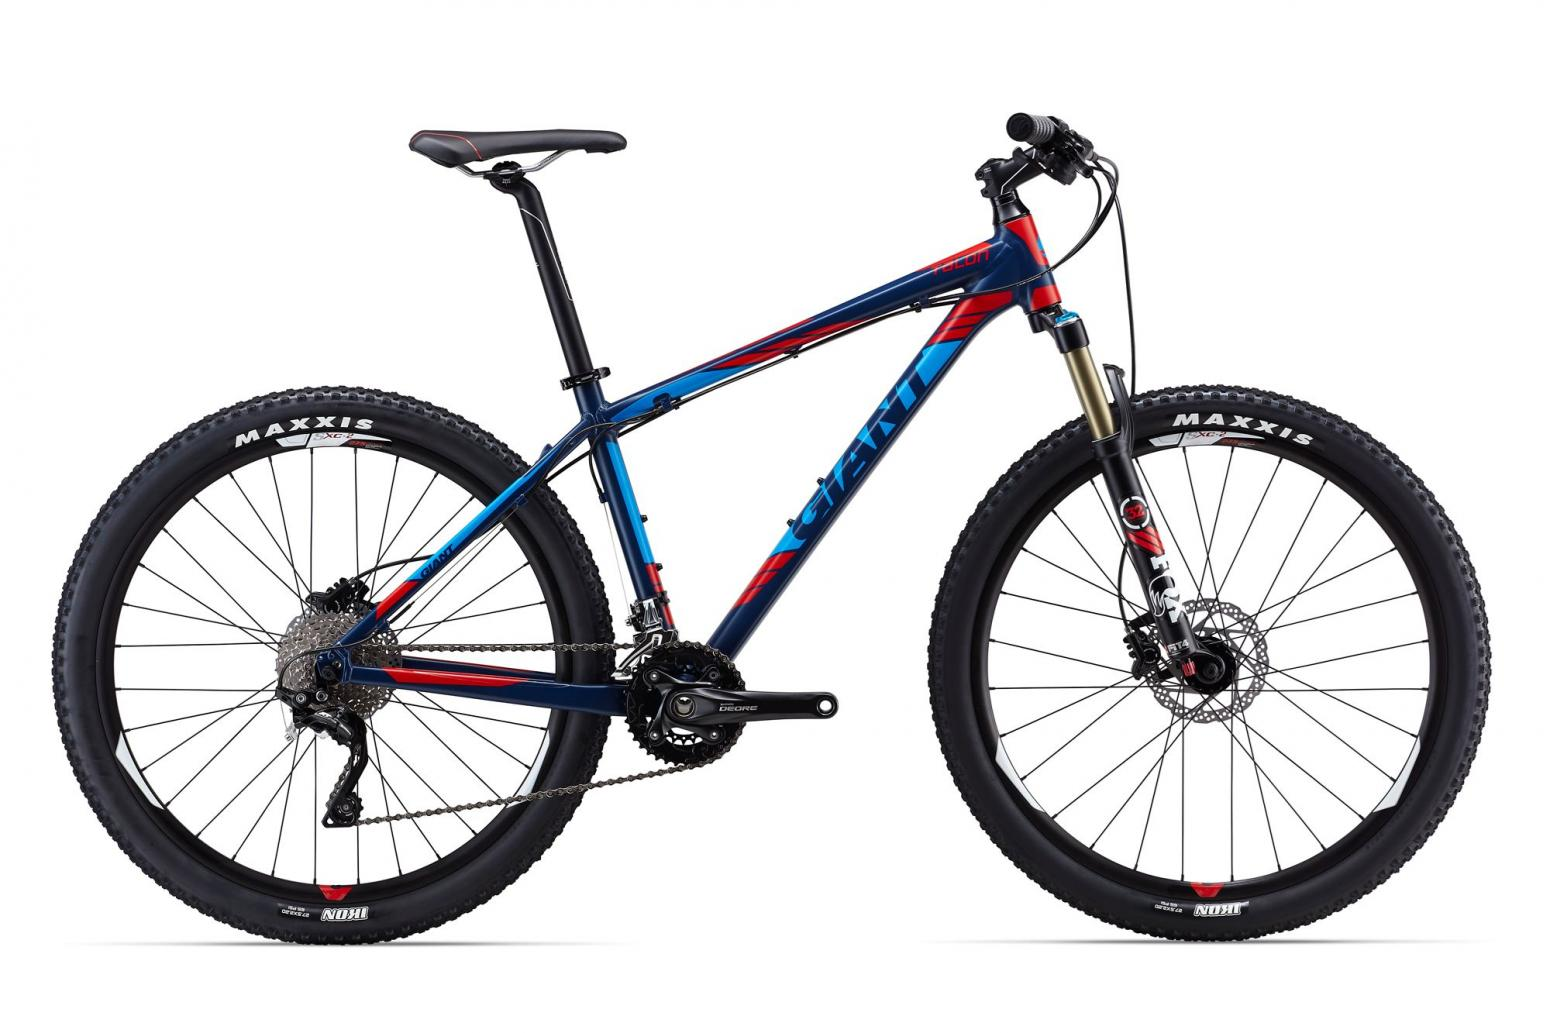 Giant MTB Trail/X-Country Talon 27.5 0 2016